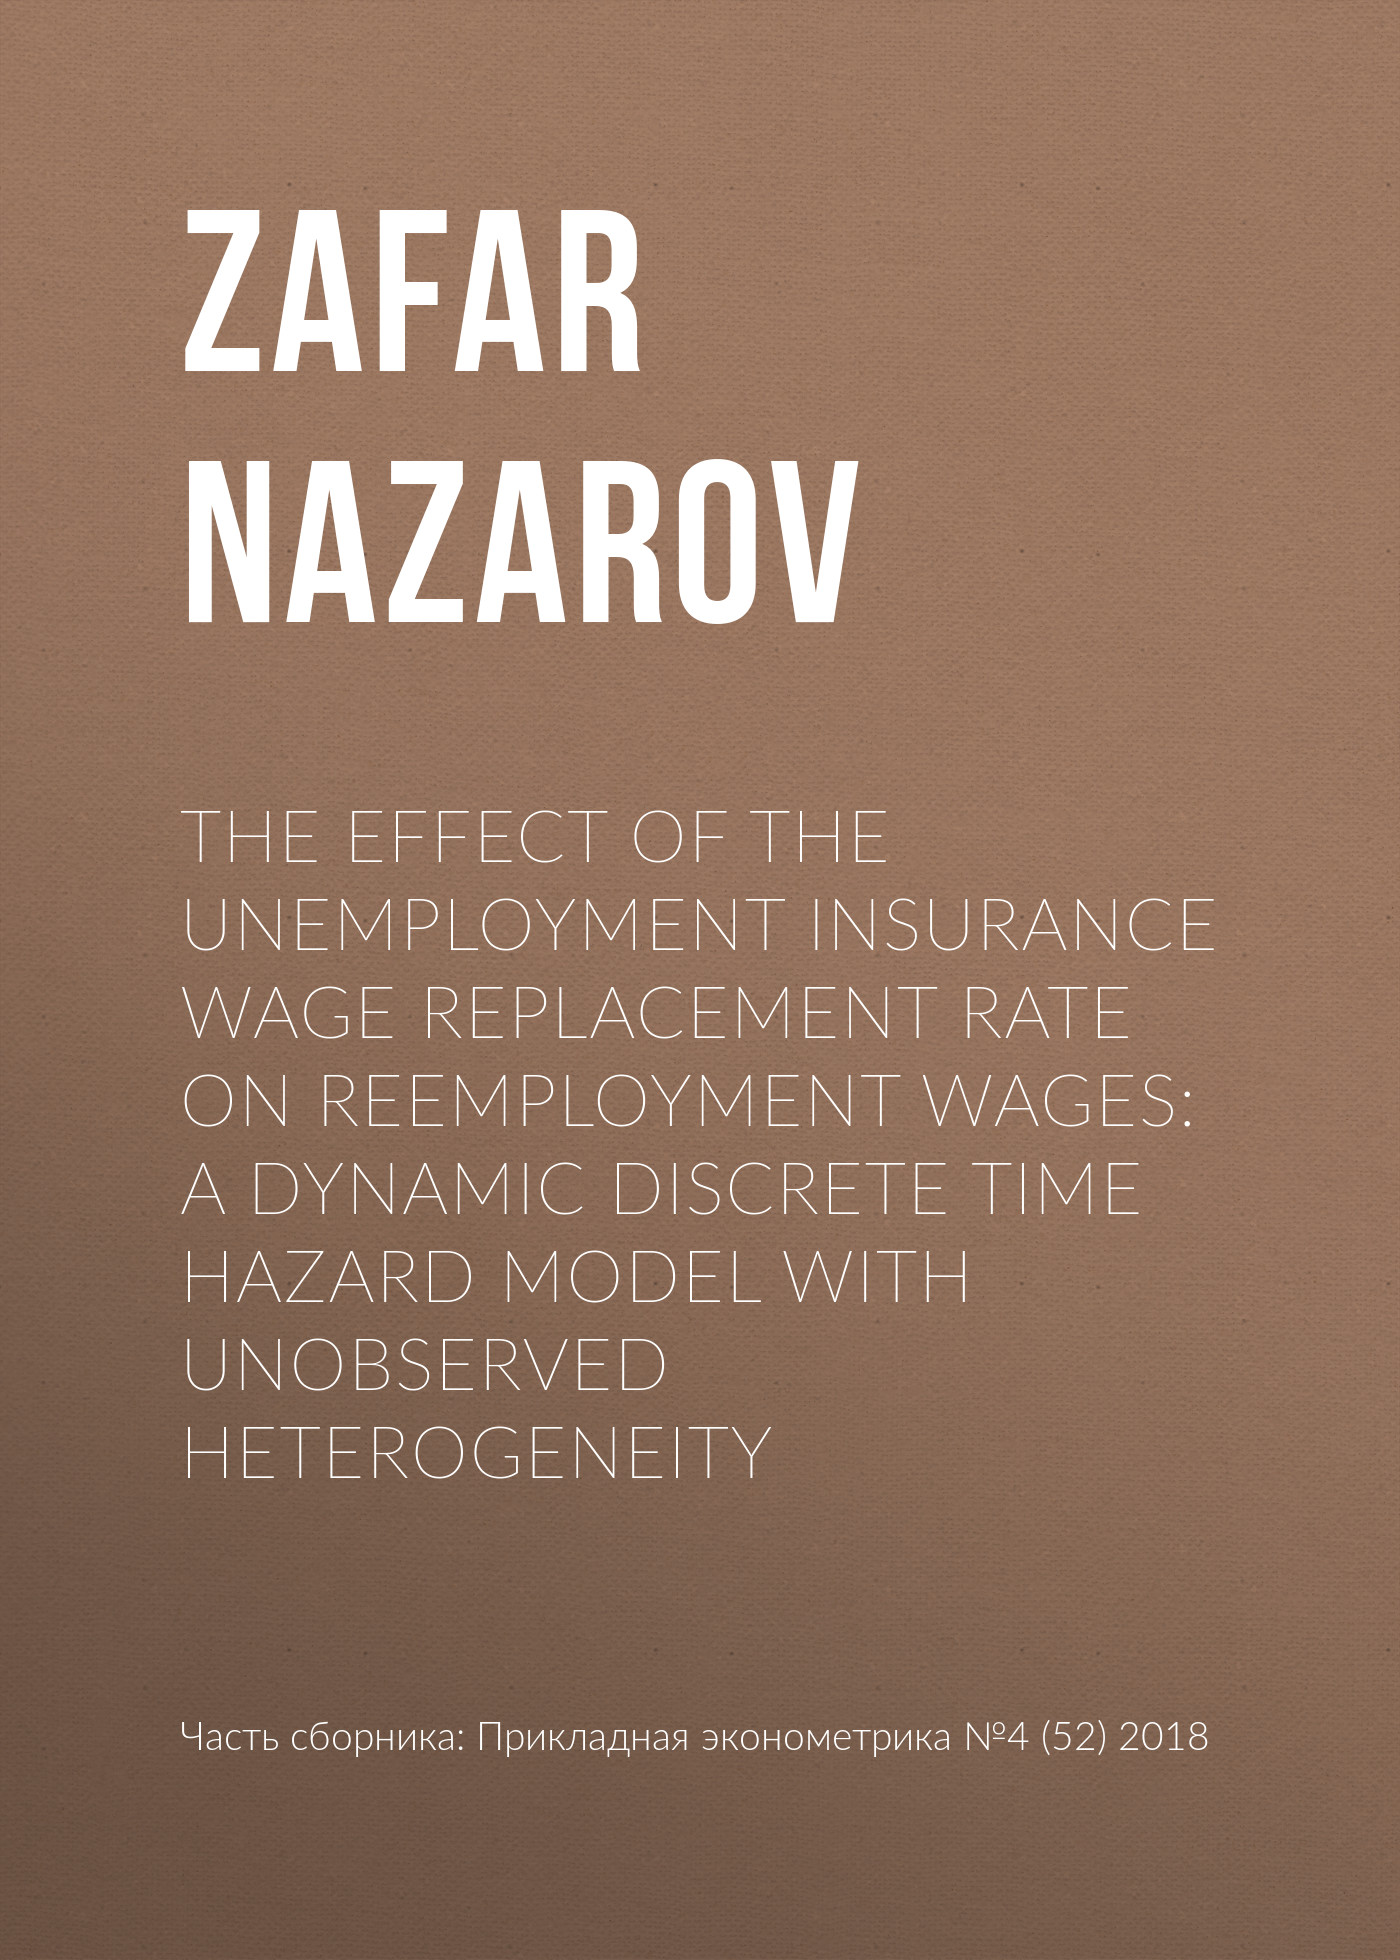 Zafar Nazarov The effect of the unemployment insurance wage replacement rate on reemployment wages: A dynamic discrete time hazard model with unobserved heterogeneity in search of lost time vol 4